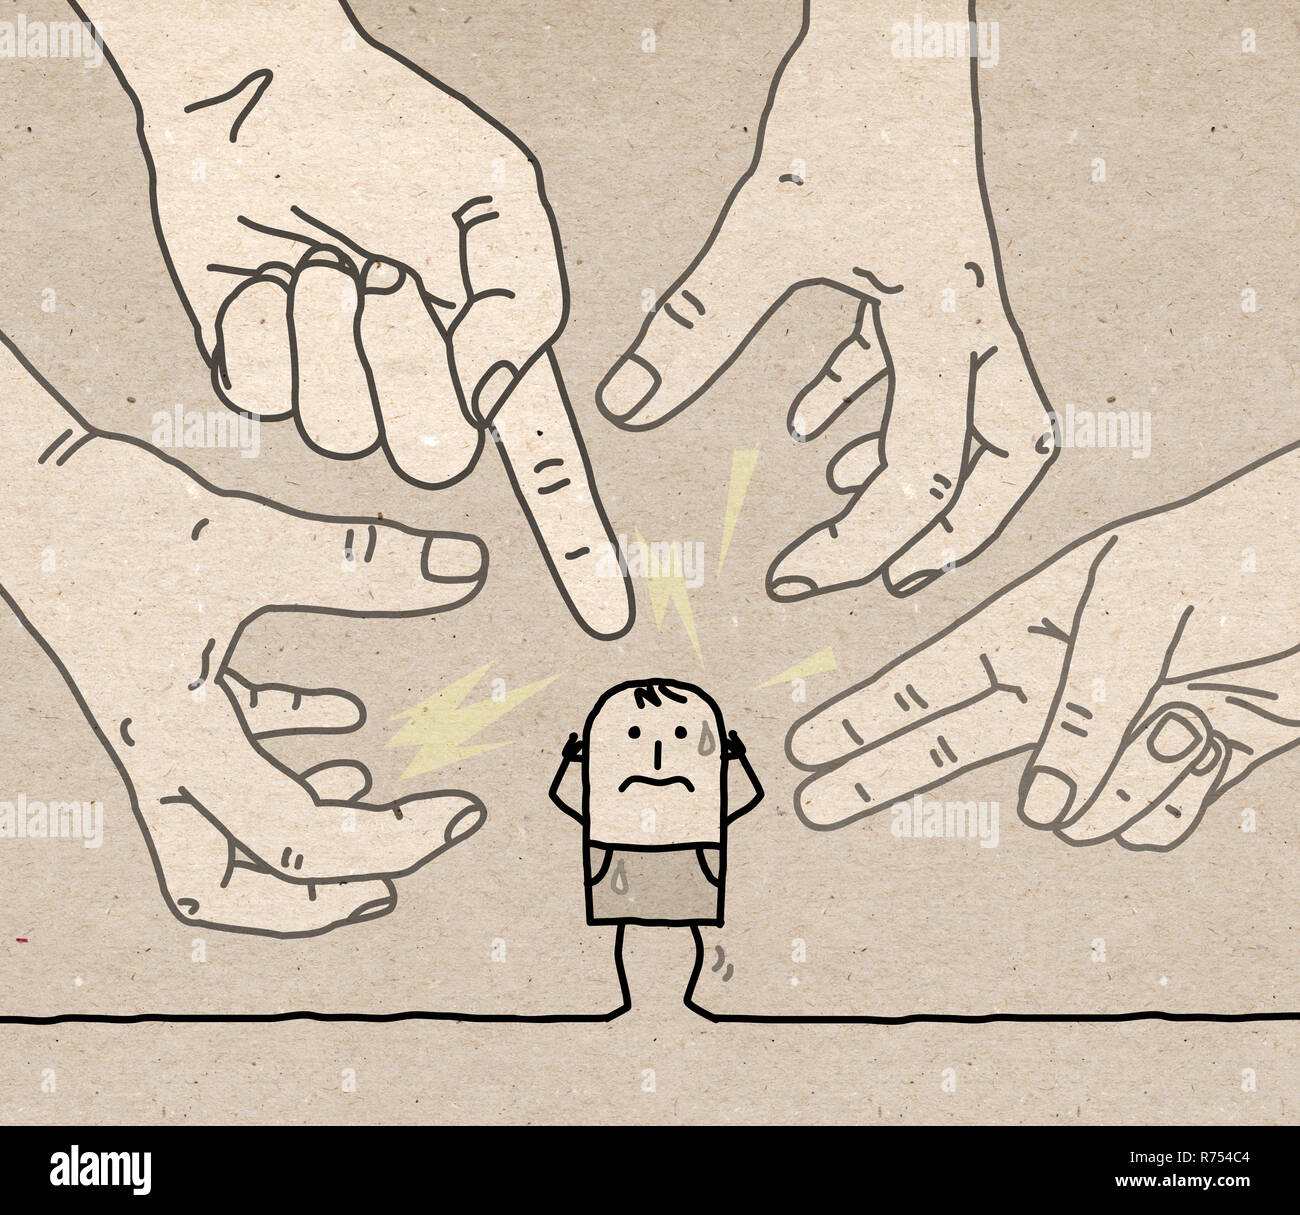 Big Hands with Cartoon Character - Aggression and Paranoia- illustration on textured brown paper - Stock Image